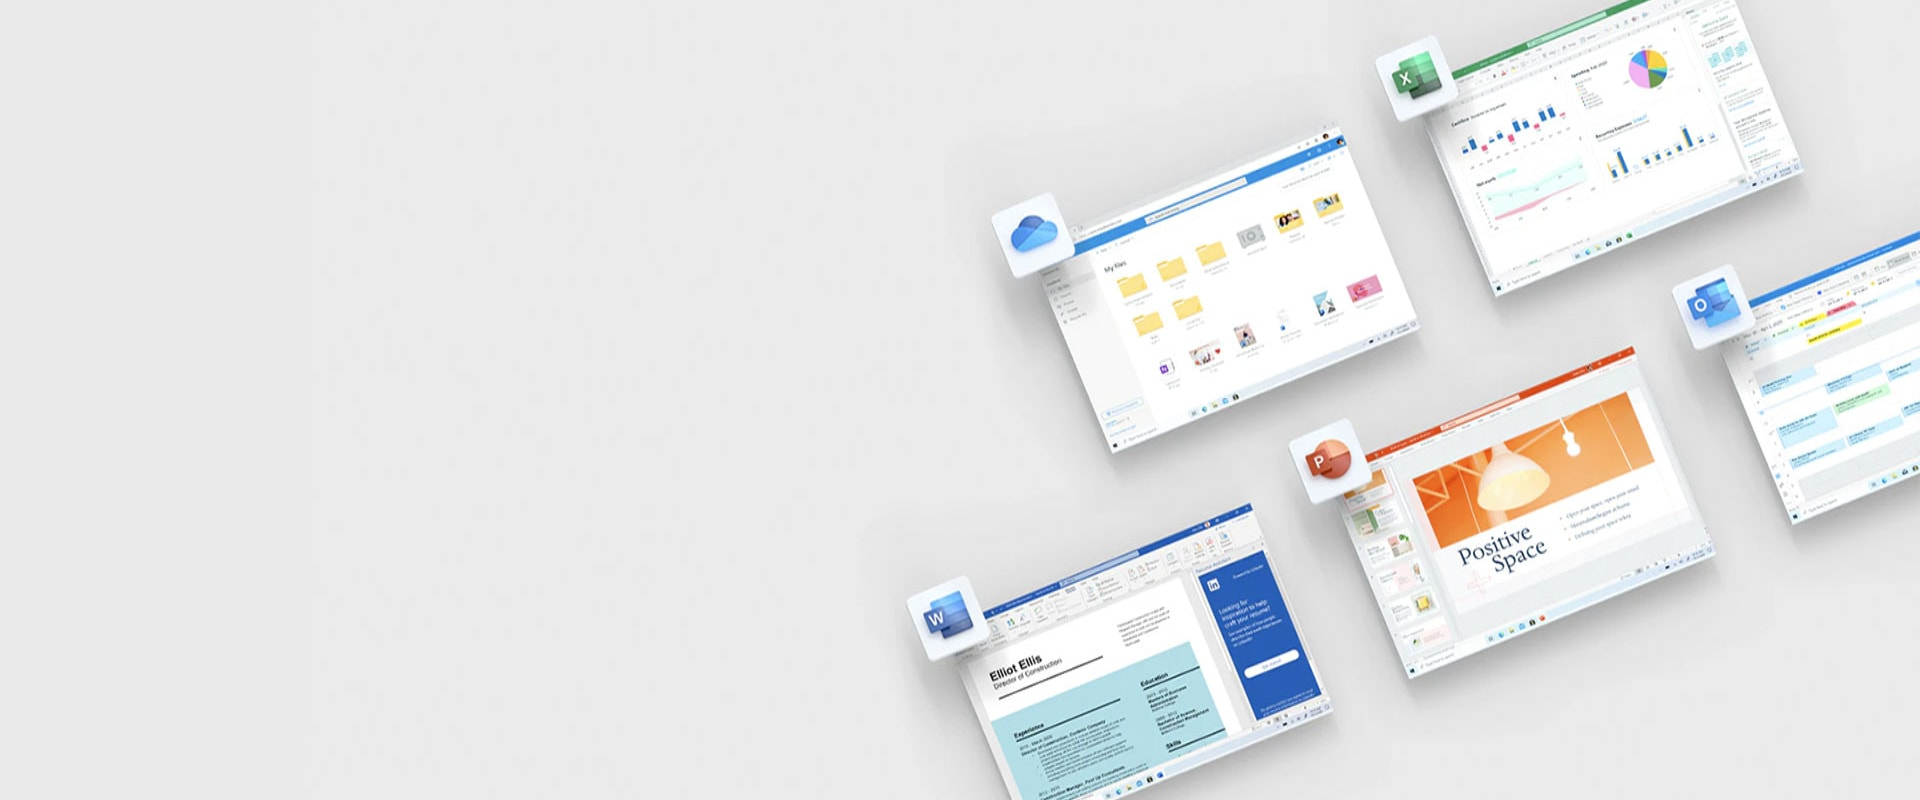 Five tiles showing OneDrive, Excel, Word, PowerPoint and Outlook.